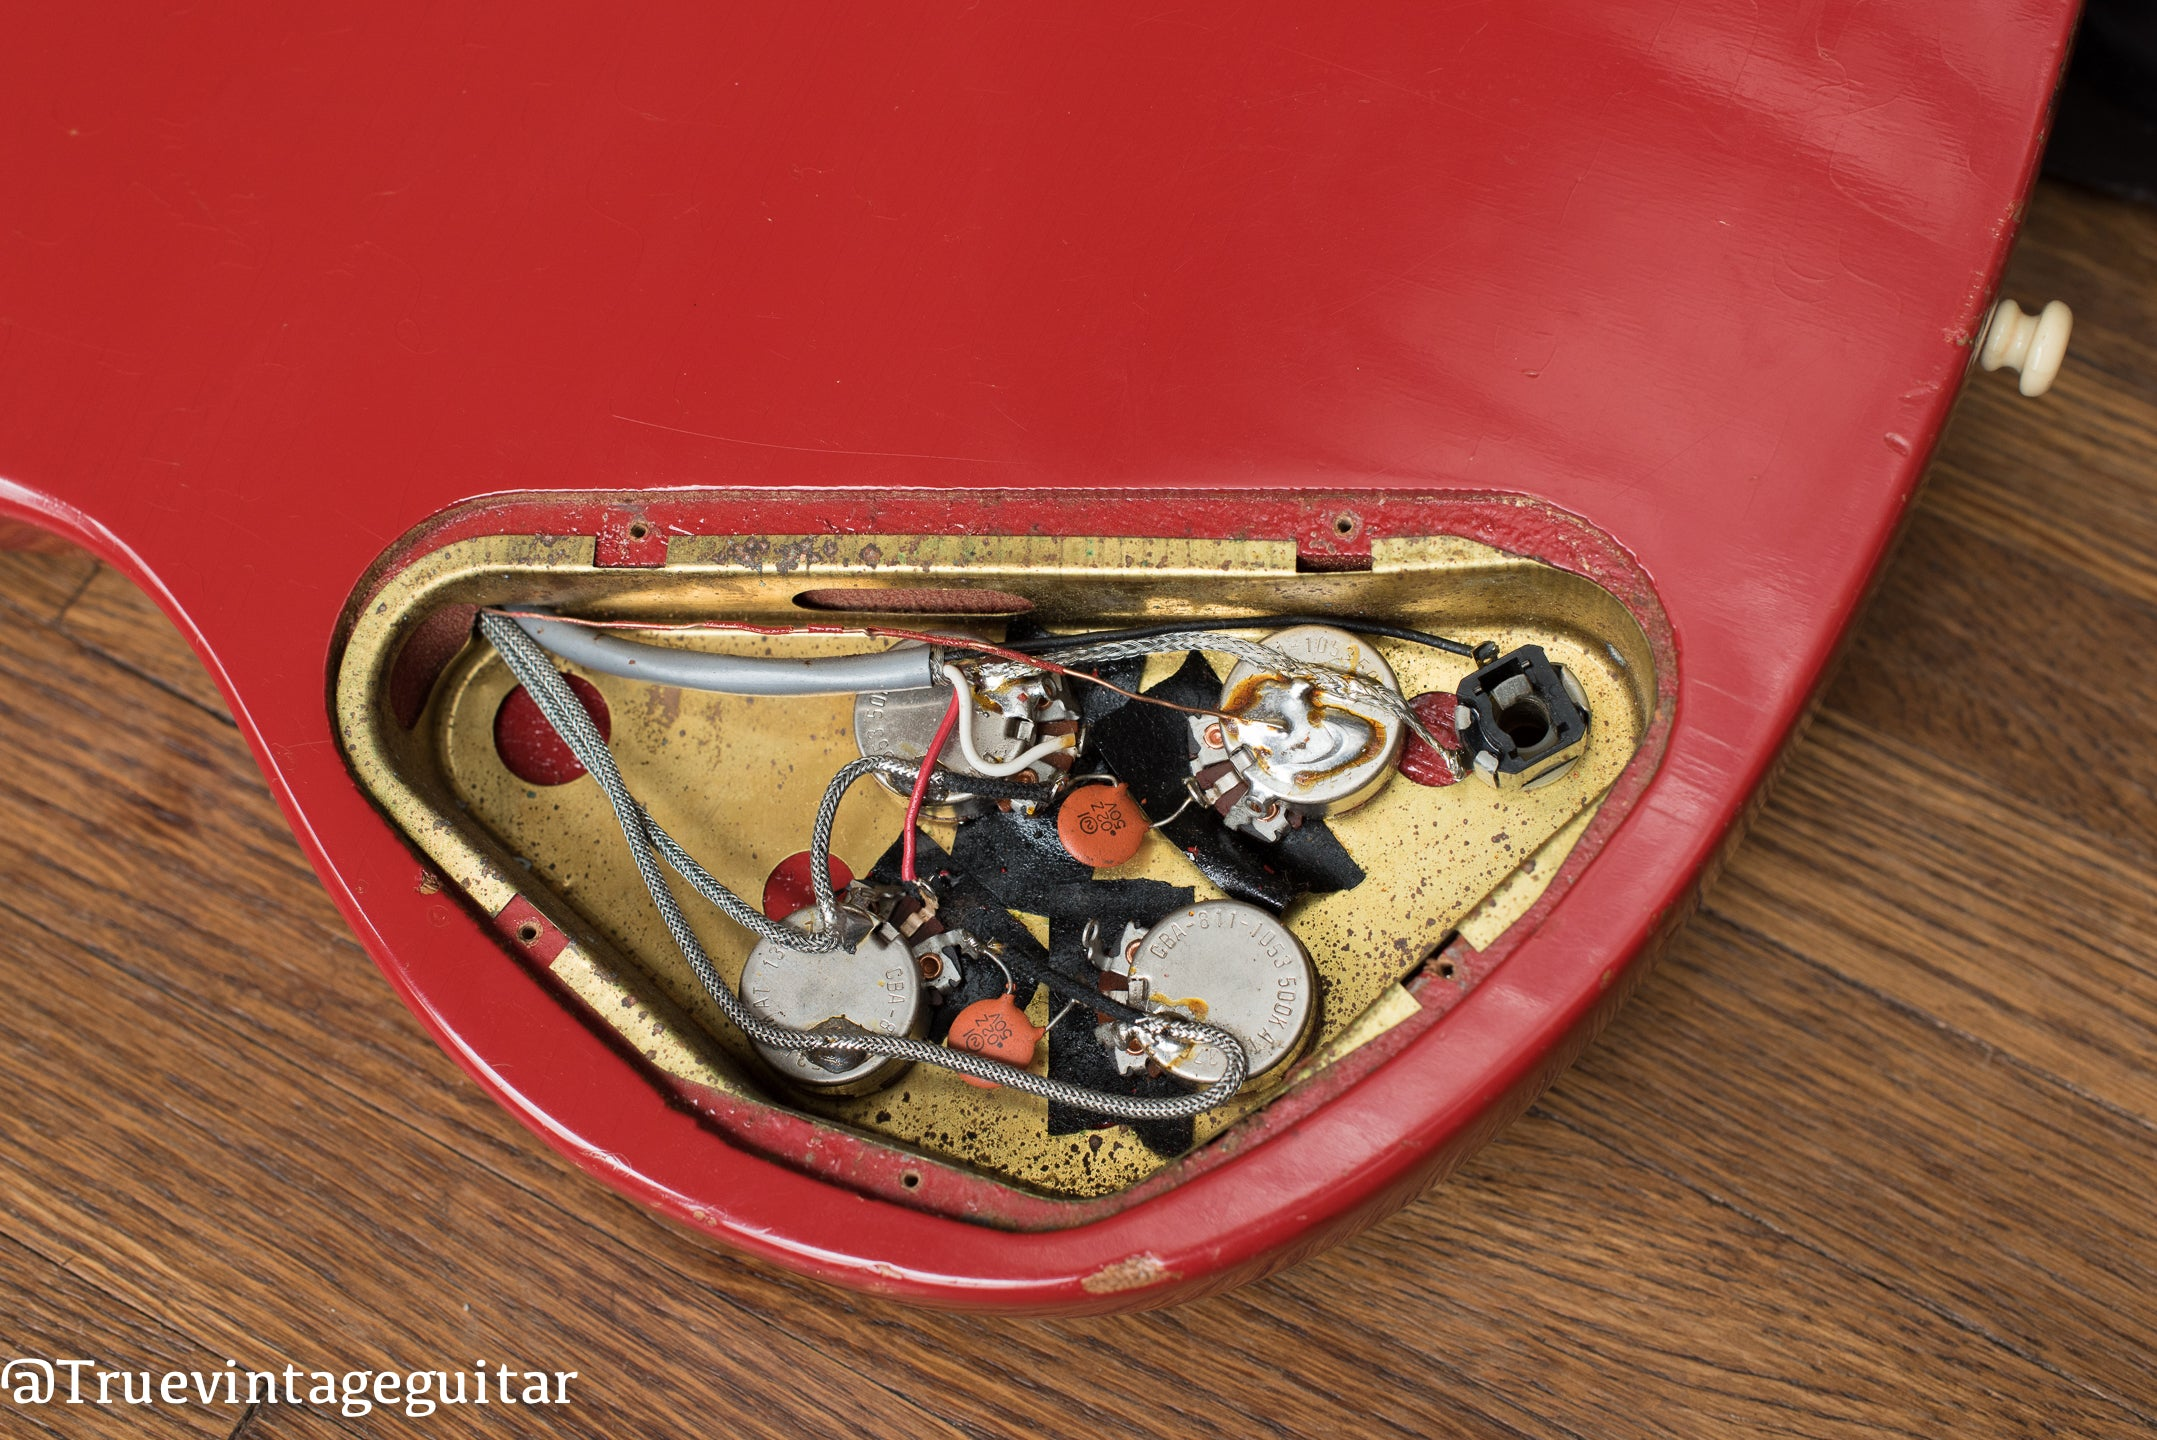 How to date vintage Gibson guitar with potentiometer codes